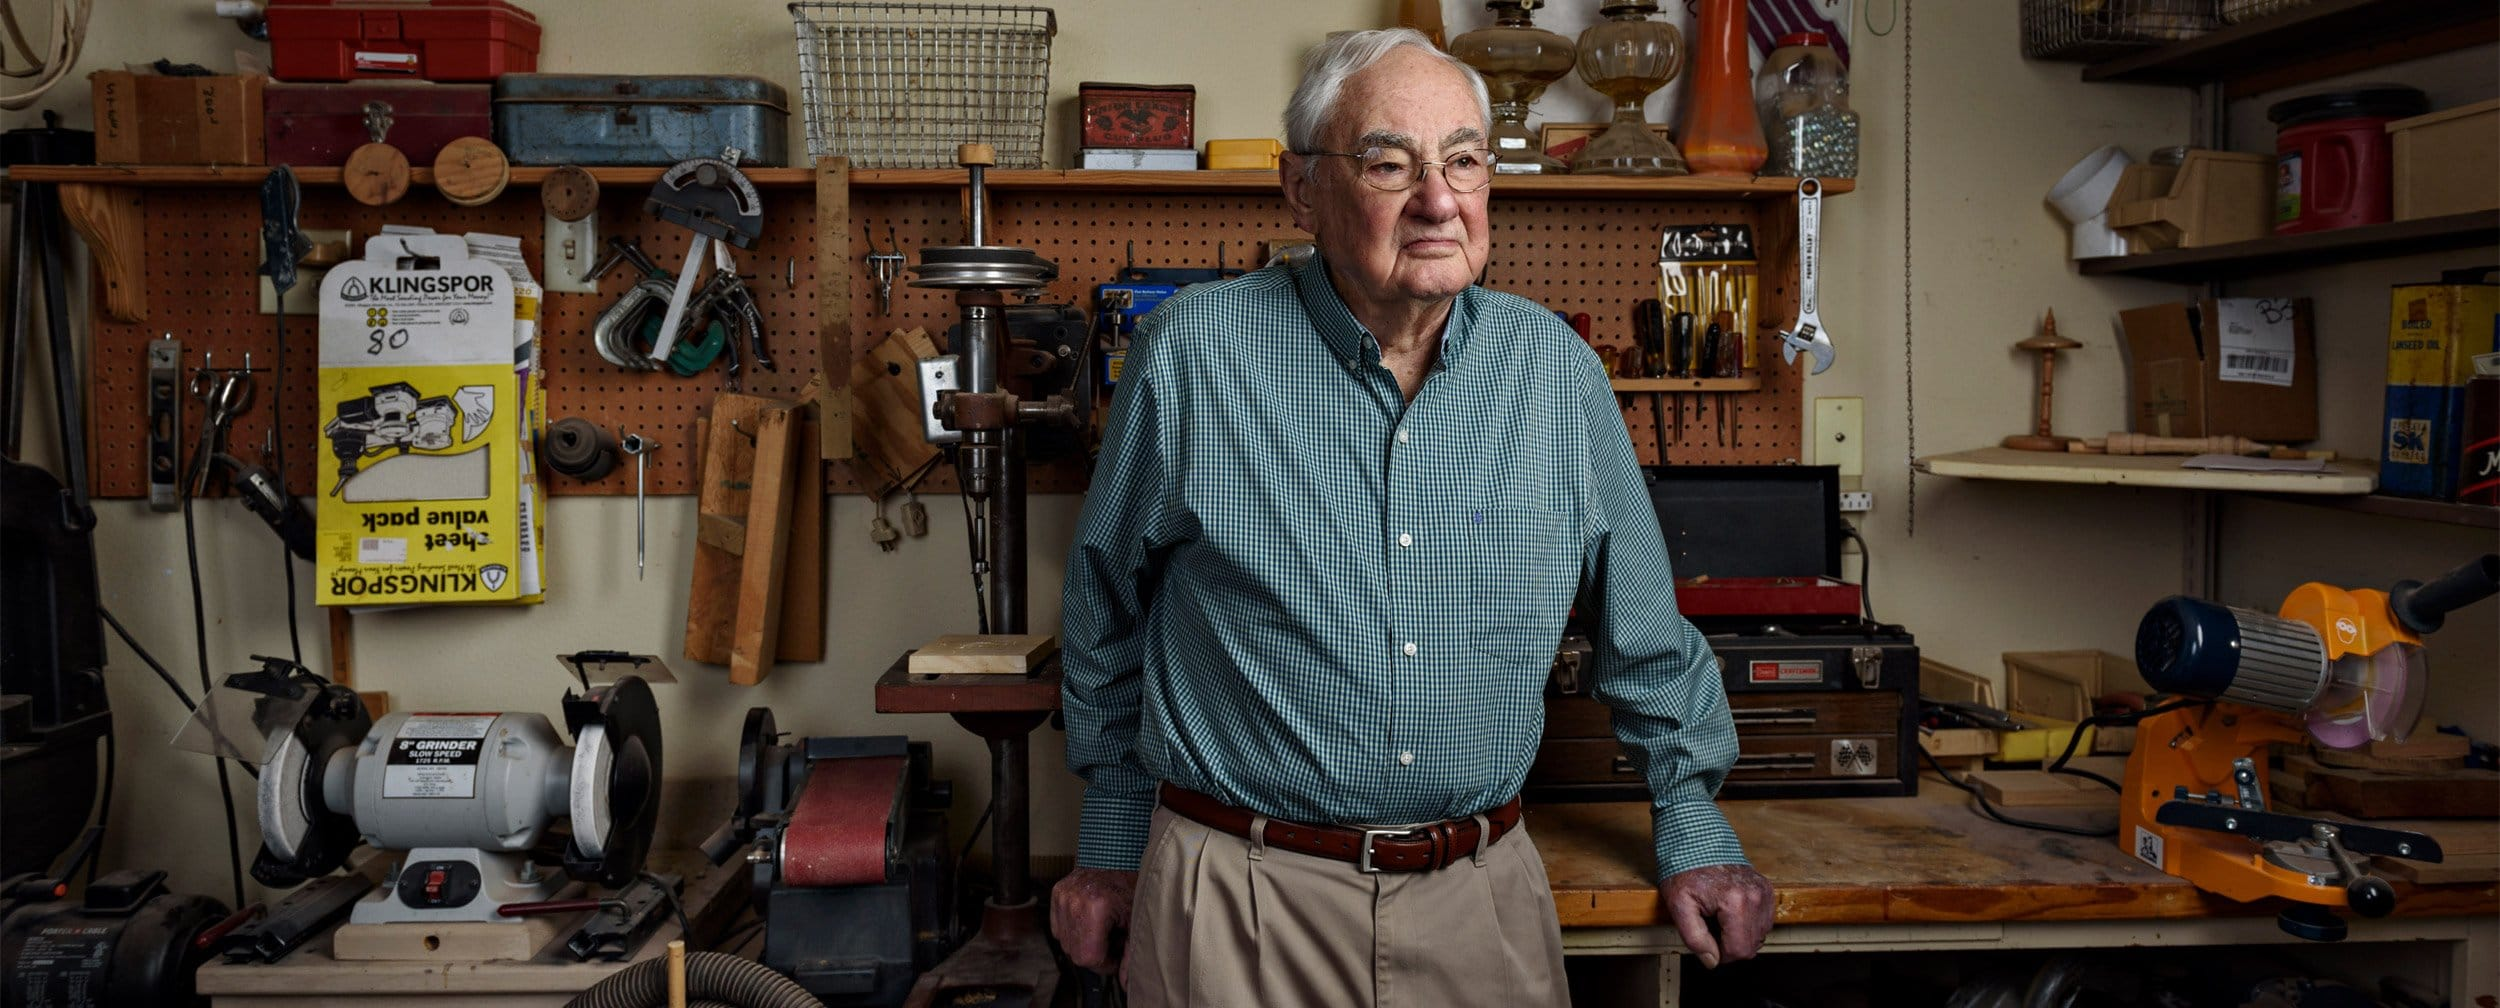 Dallas porrait artist photographs older man in wood shop in mckinney texas